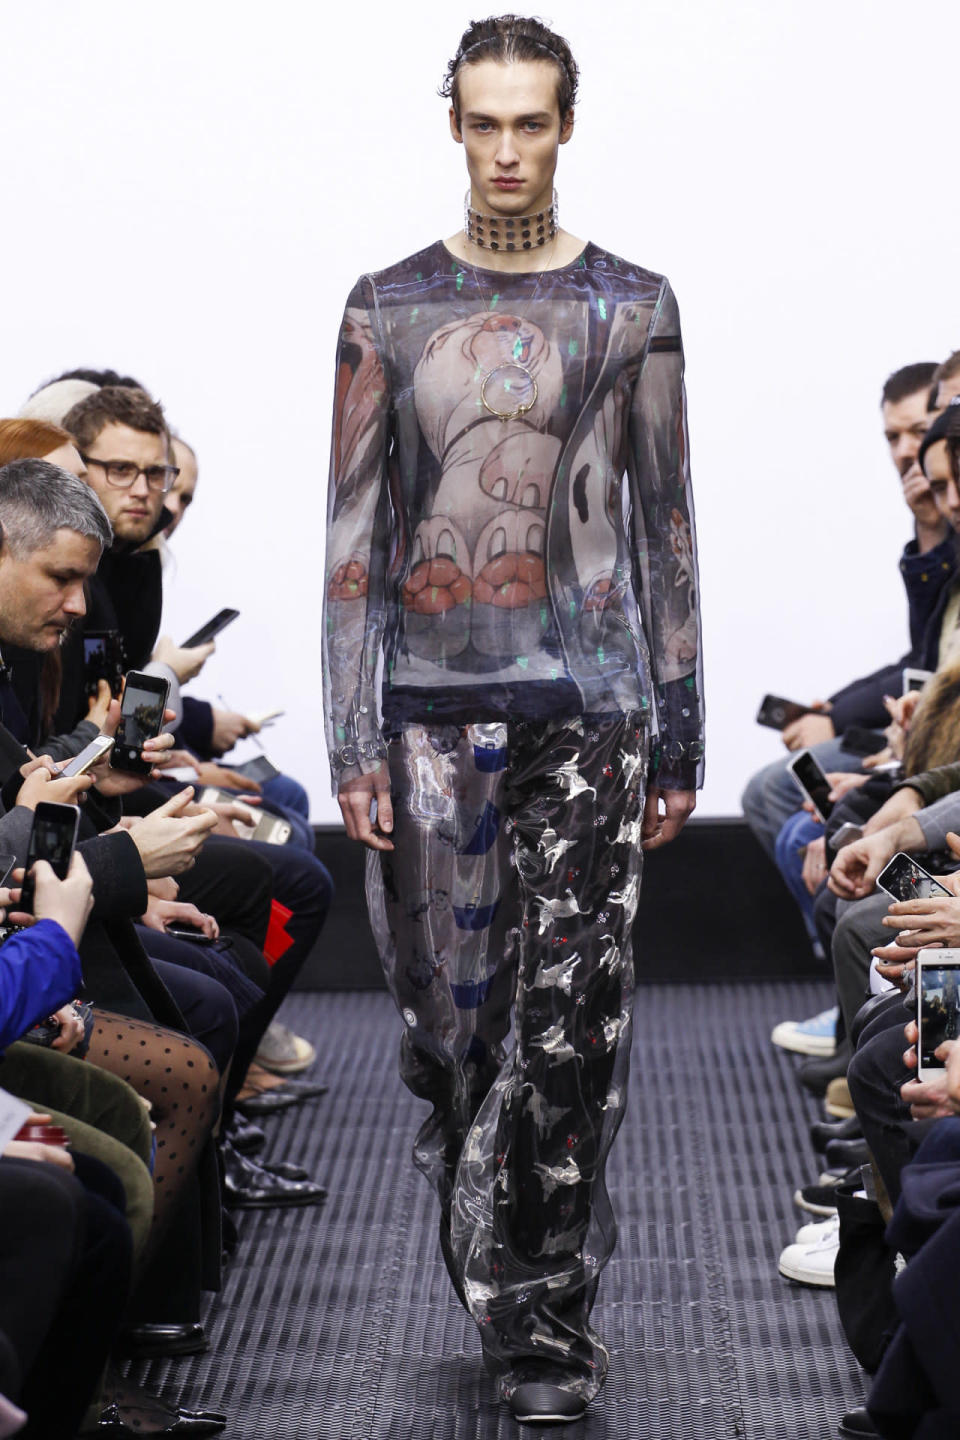 <p>The print and fabrics from this collection was a visual feast for the eyes, which made sense to live stream the show on the gay dating app, Grindr.<i> Photo: Getty Images</i></p>